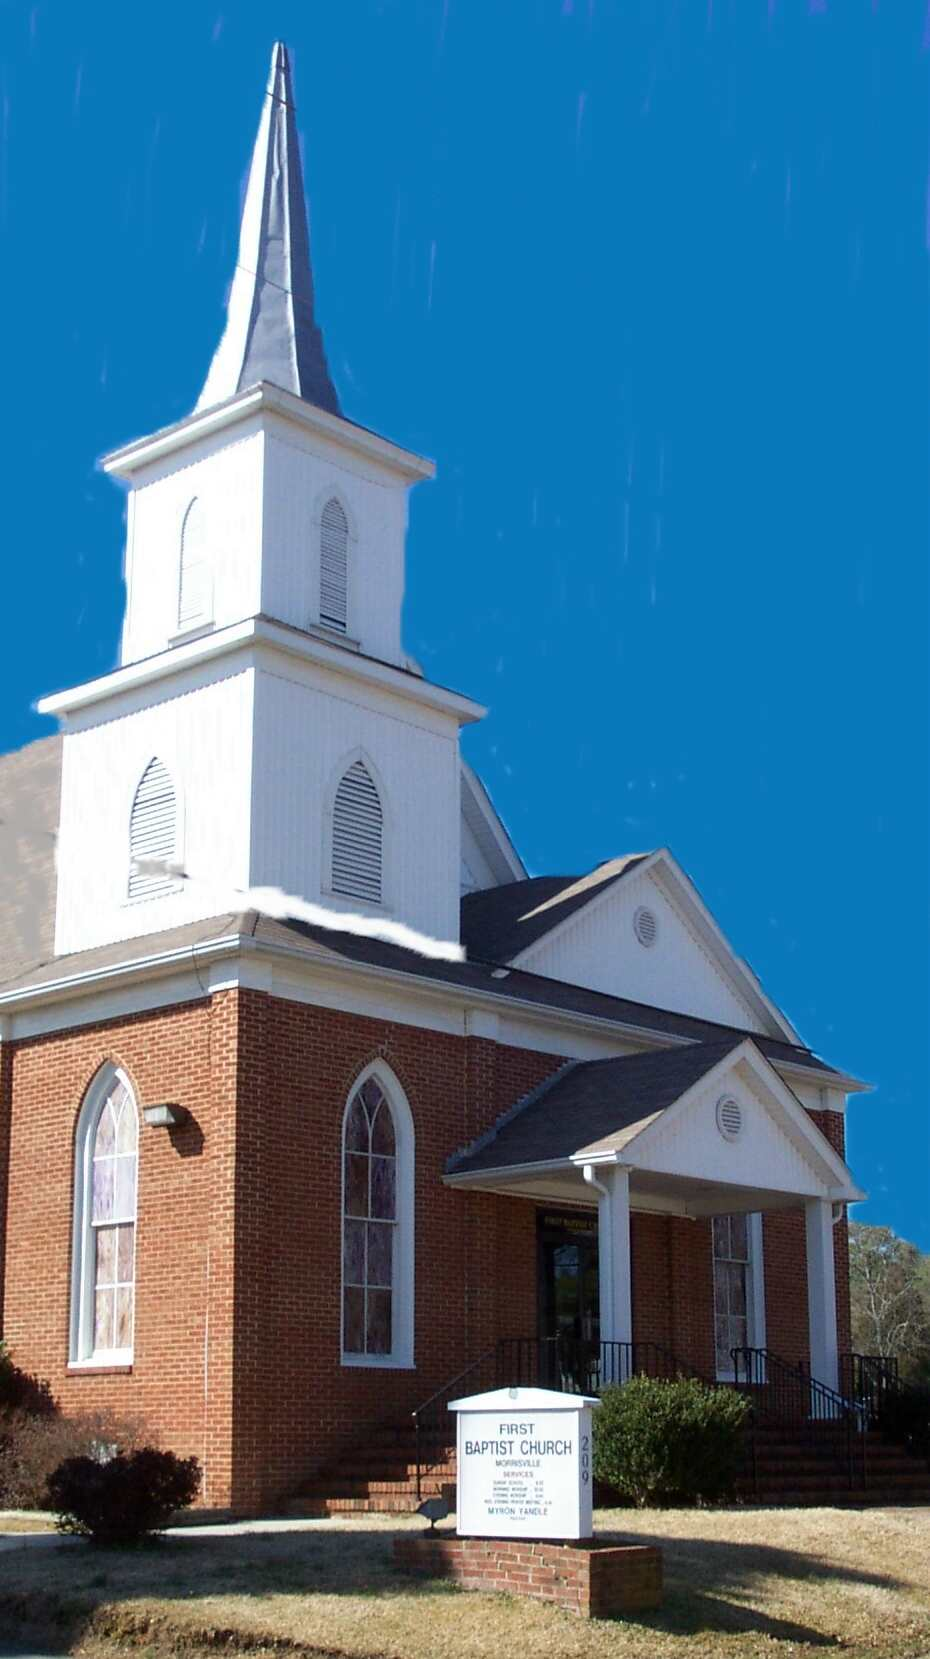 First Baptist Church of Morrisville, a light house in our community since 1866